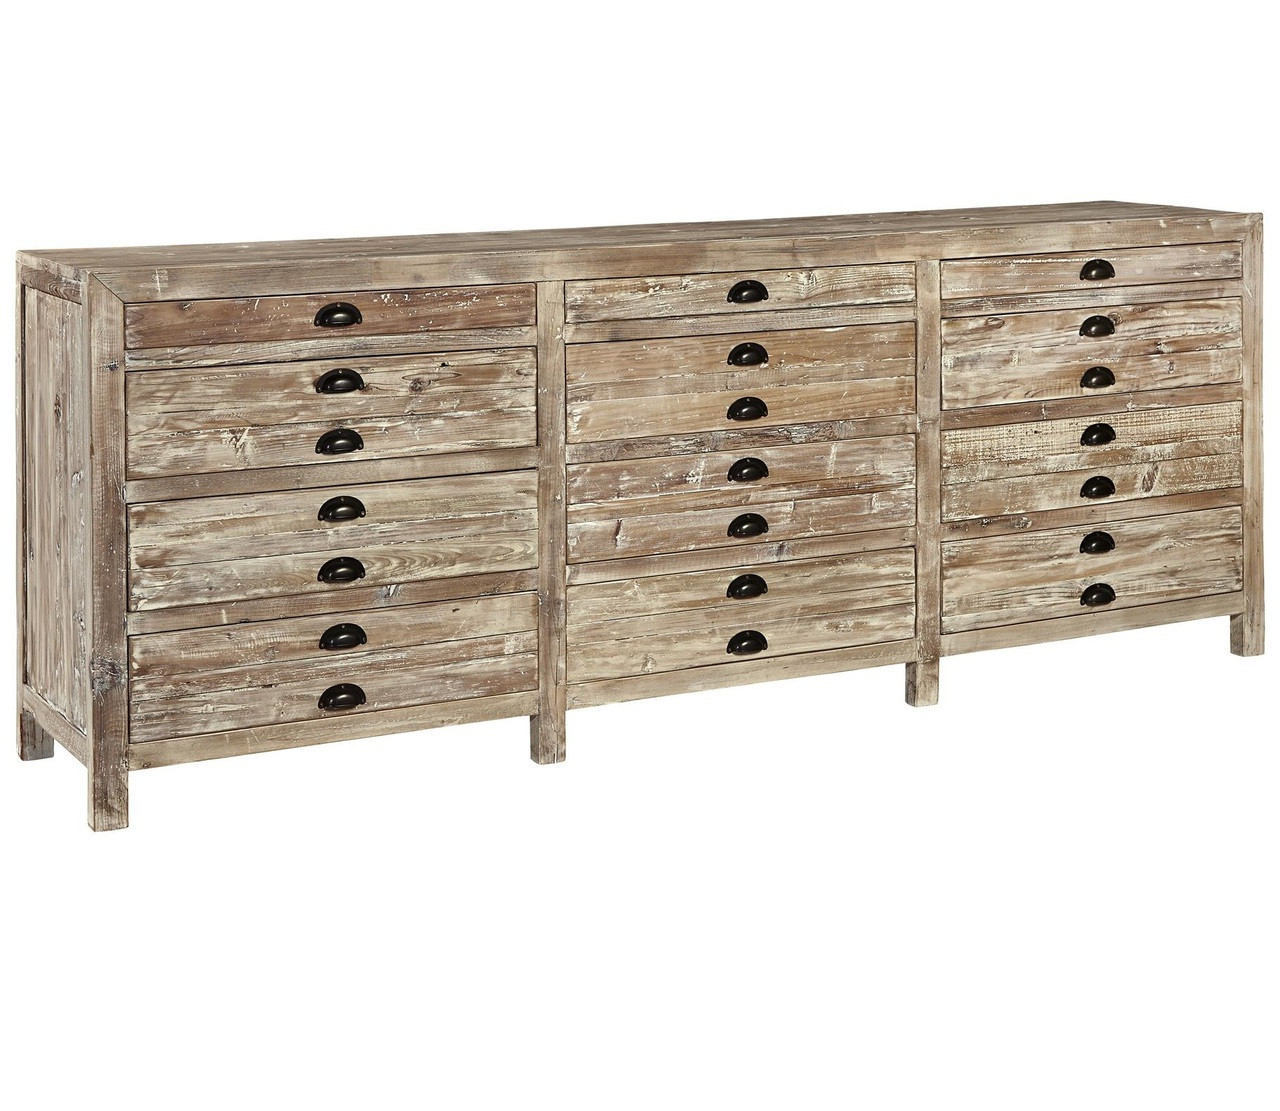 12 Drawer Chest Of Drawers Apothecary Reclaimed Wood 12 Drawer Storage Chest